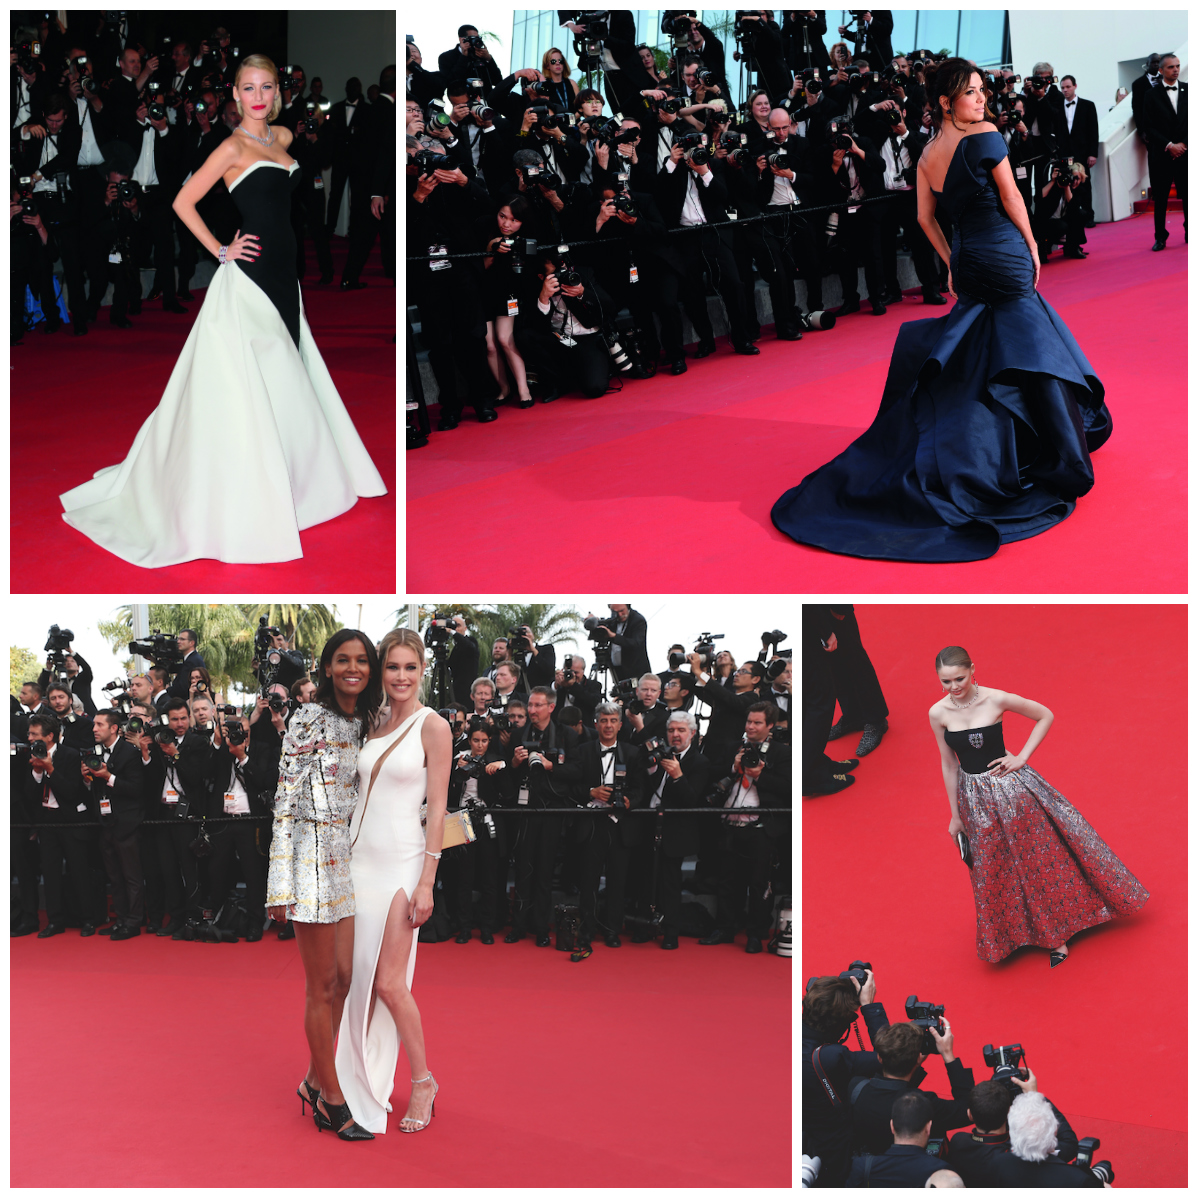 Get ready for Cannes Filmfestival 2016